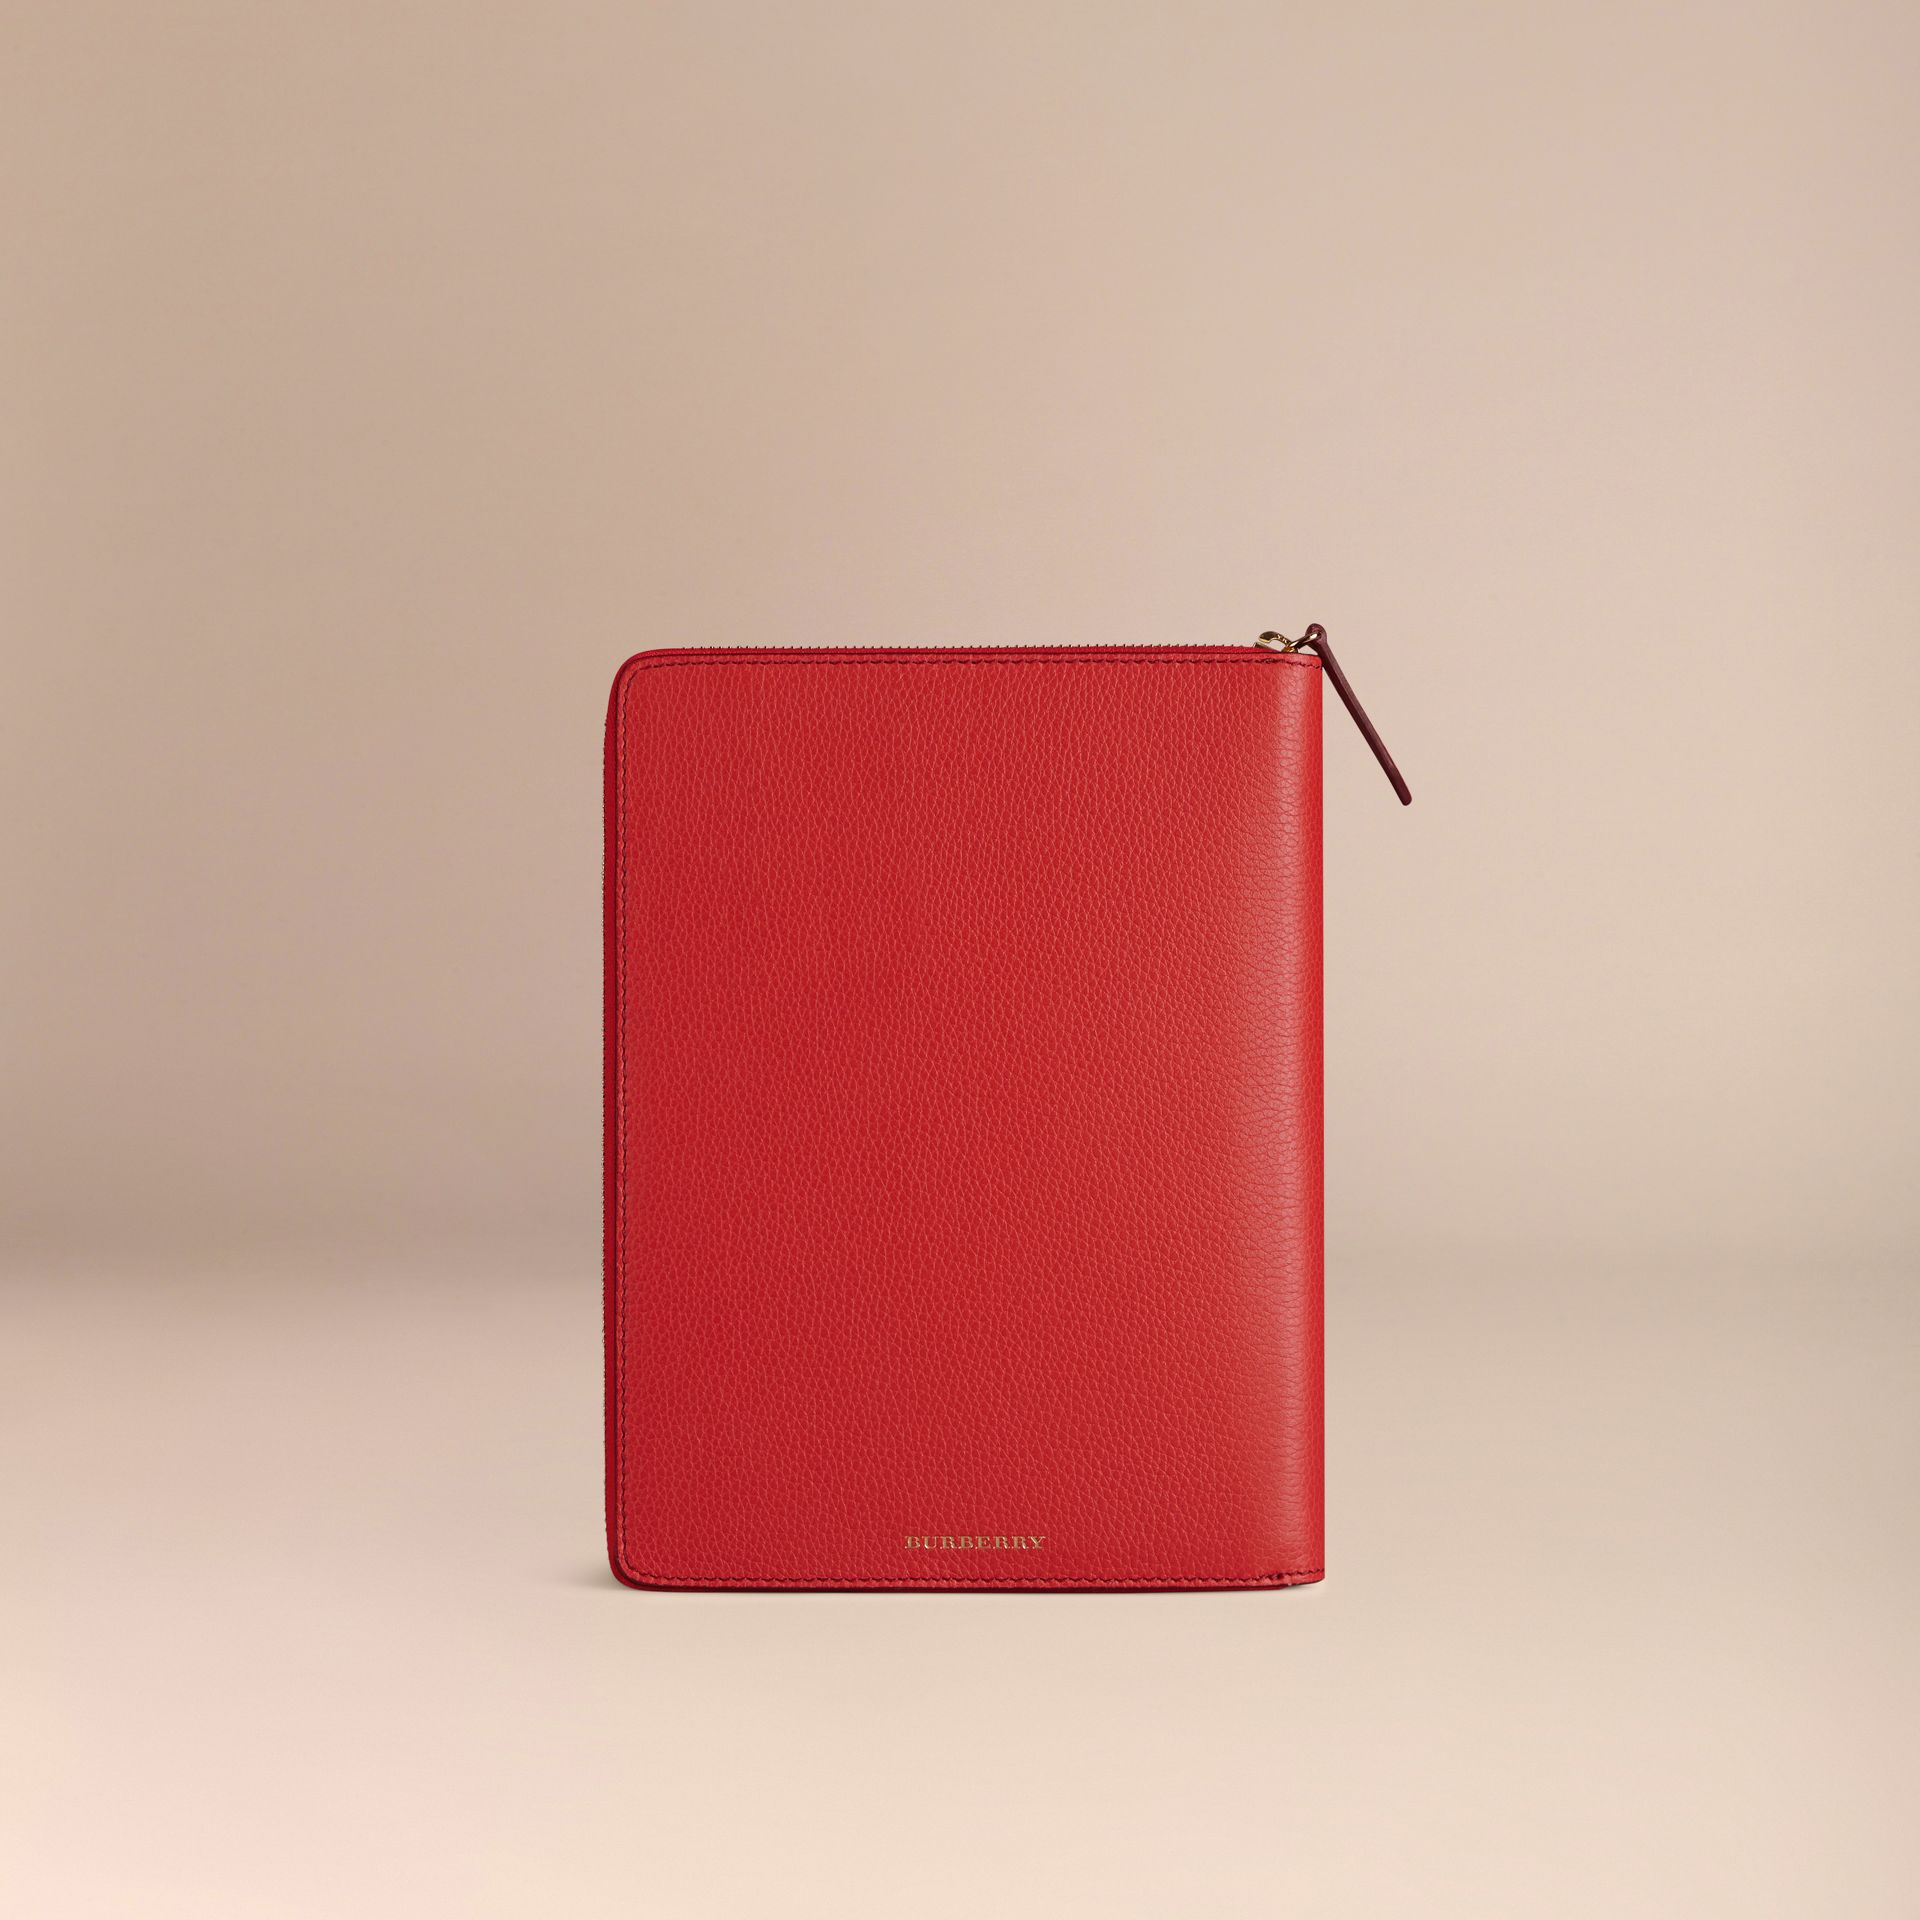 Ziparound Grainy Leather 18 Month 2016/17 A5 Diary Orange Red - gallery image 3